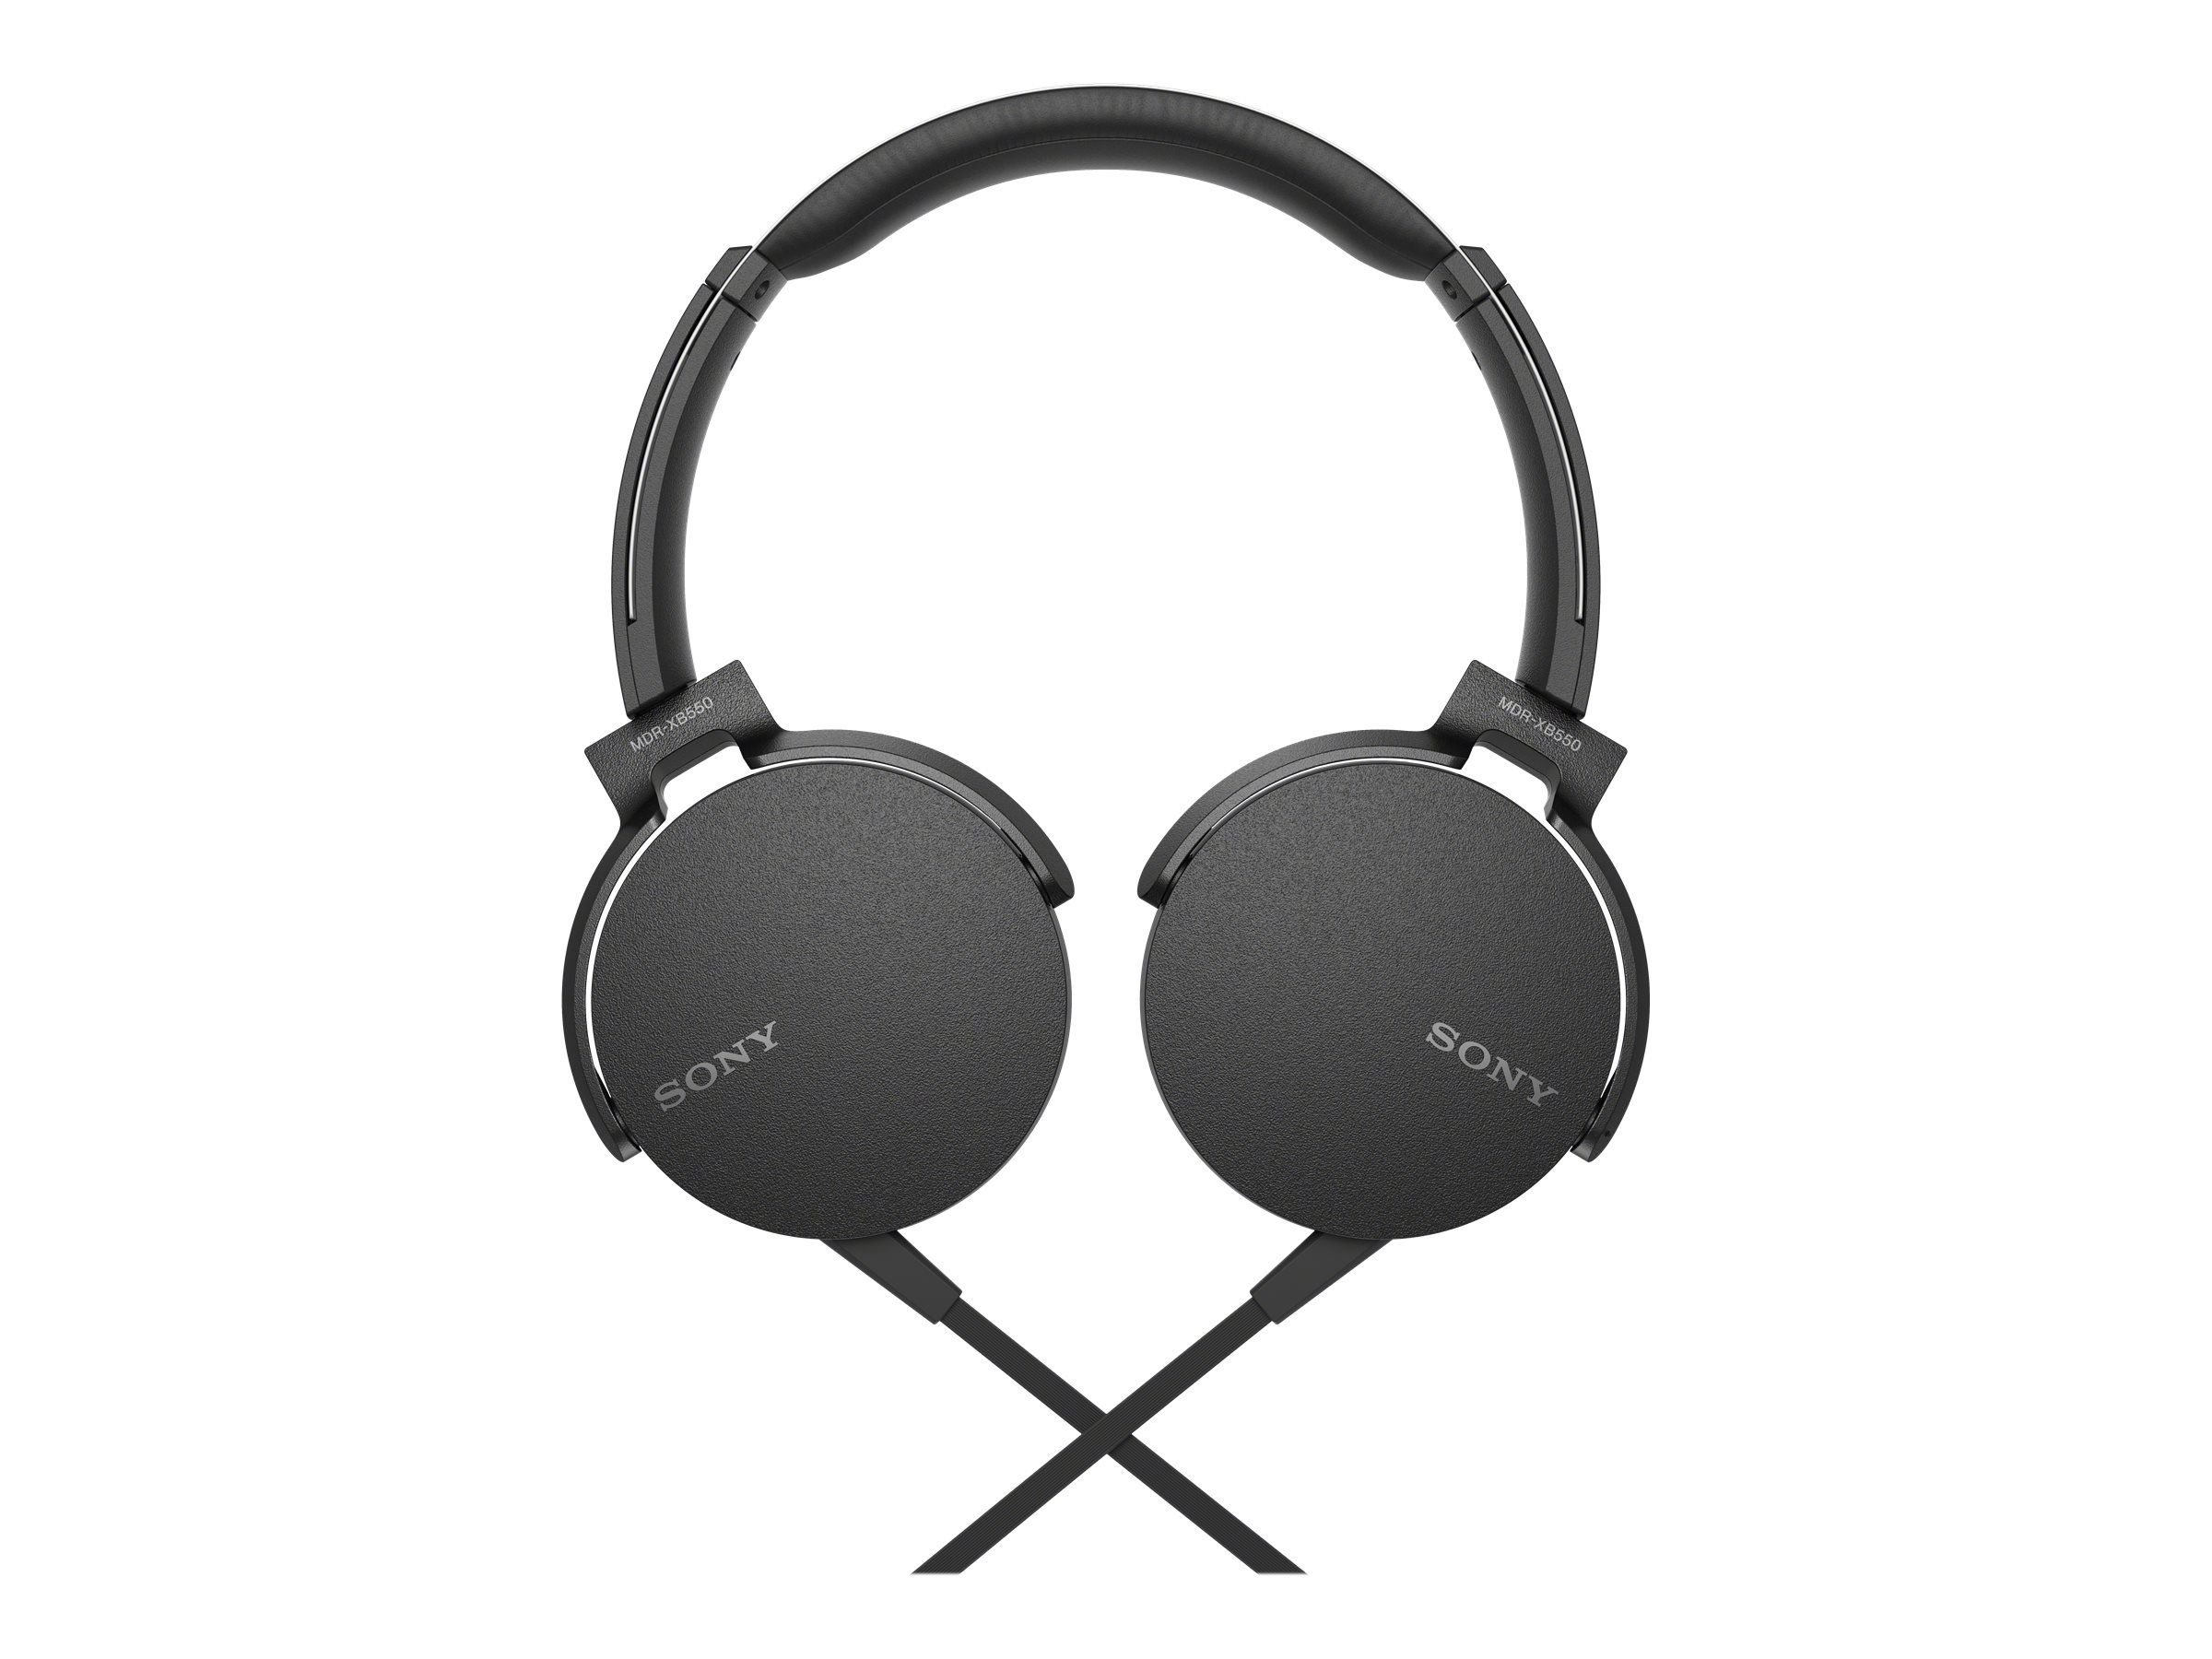 Image for Sony Mdr-Xb550Ap - Headphones With Mic from Circuit City